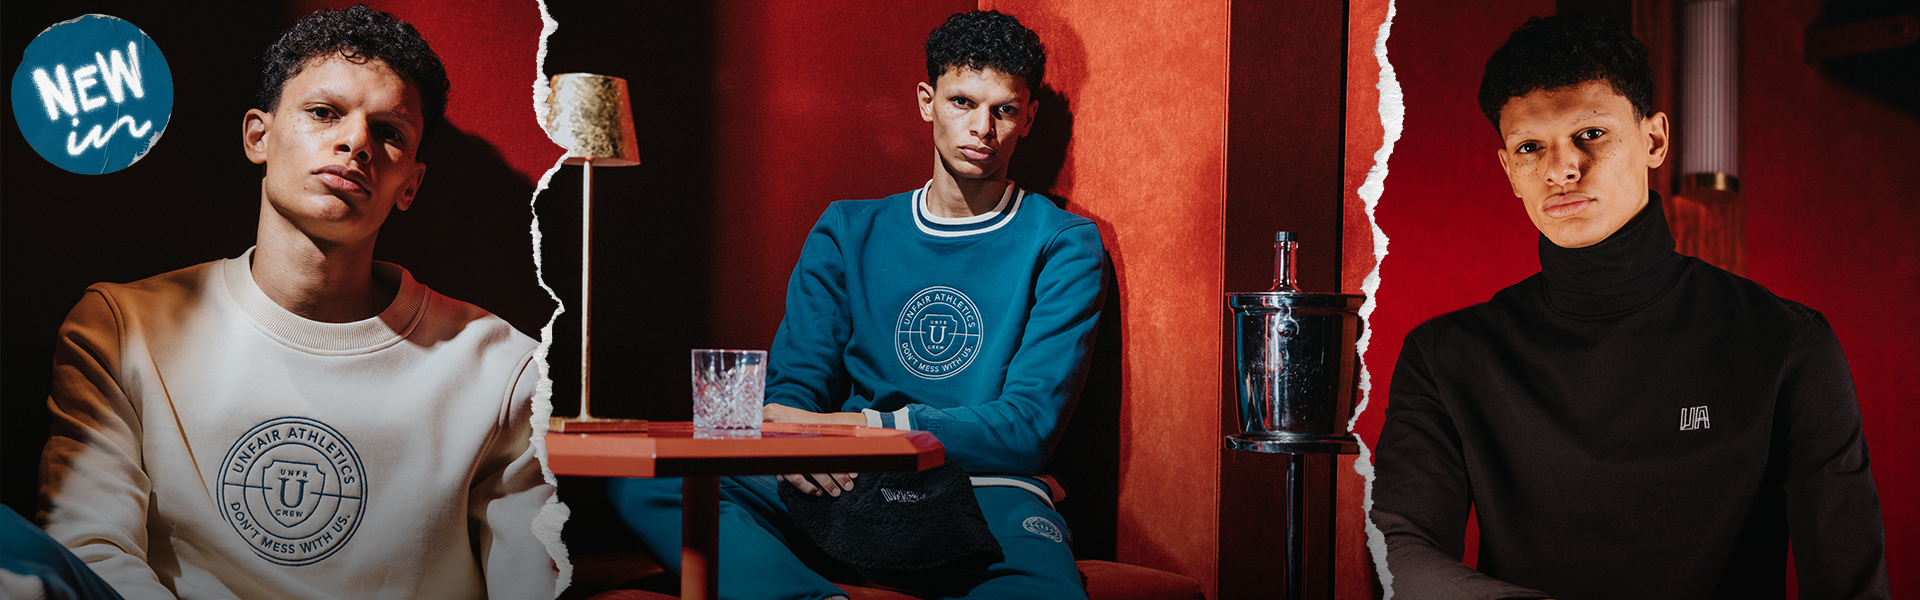 Model wears apparel of Inner Circle collection from Unfair Athletics